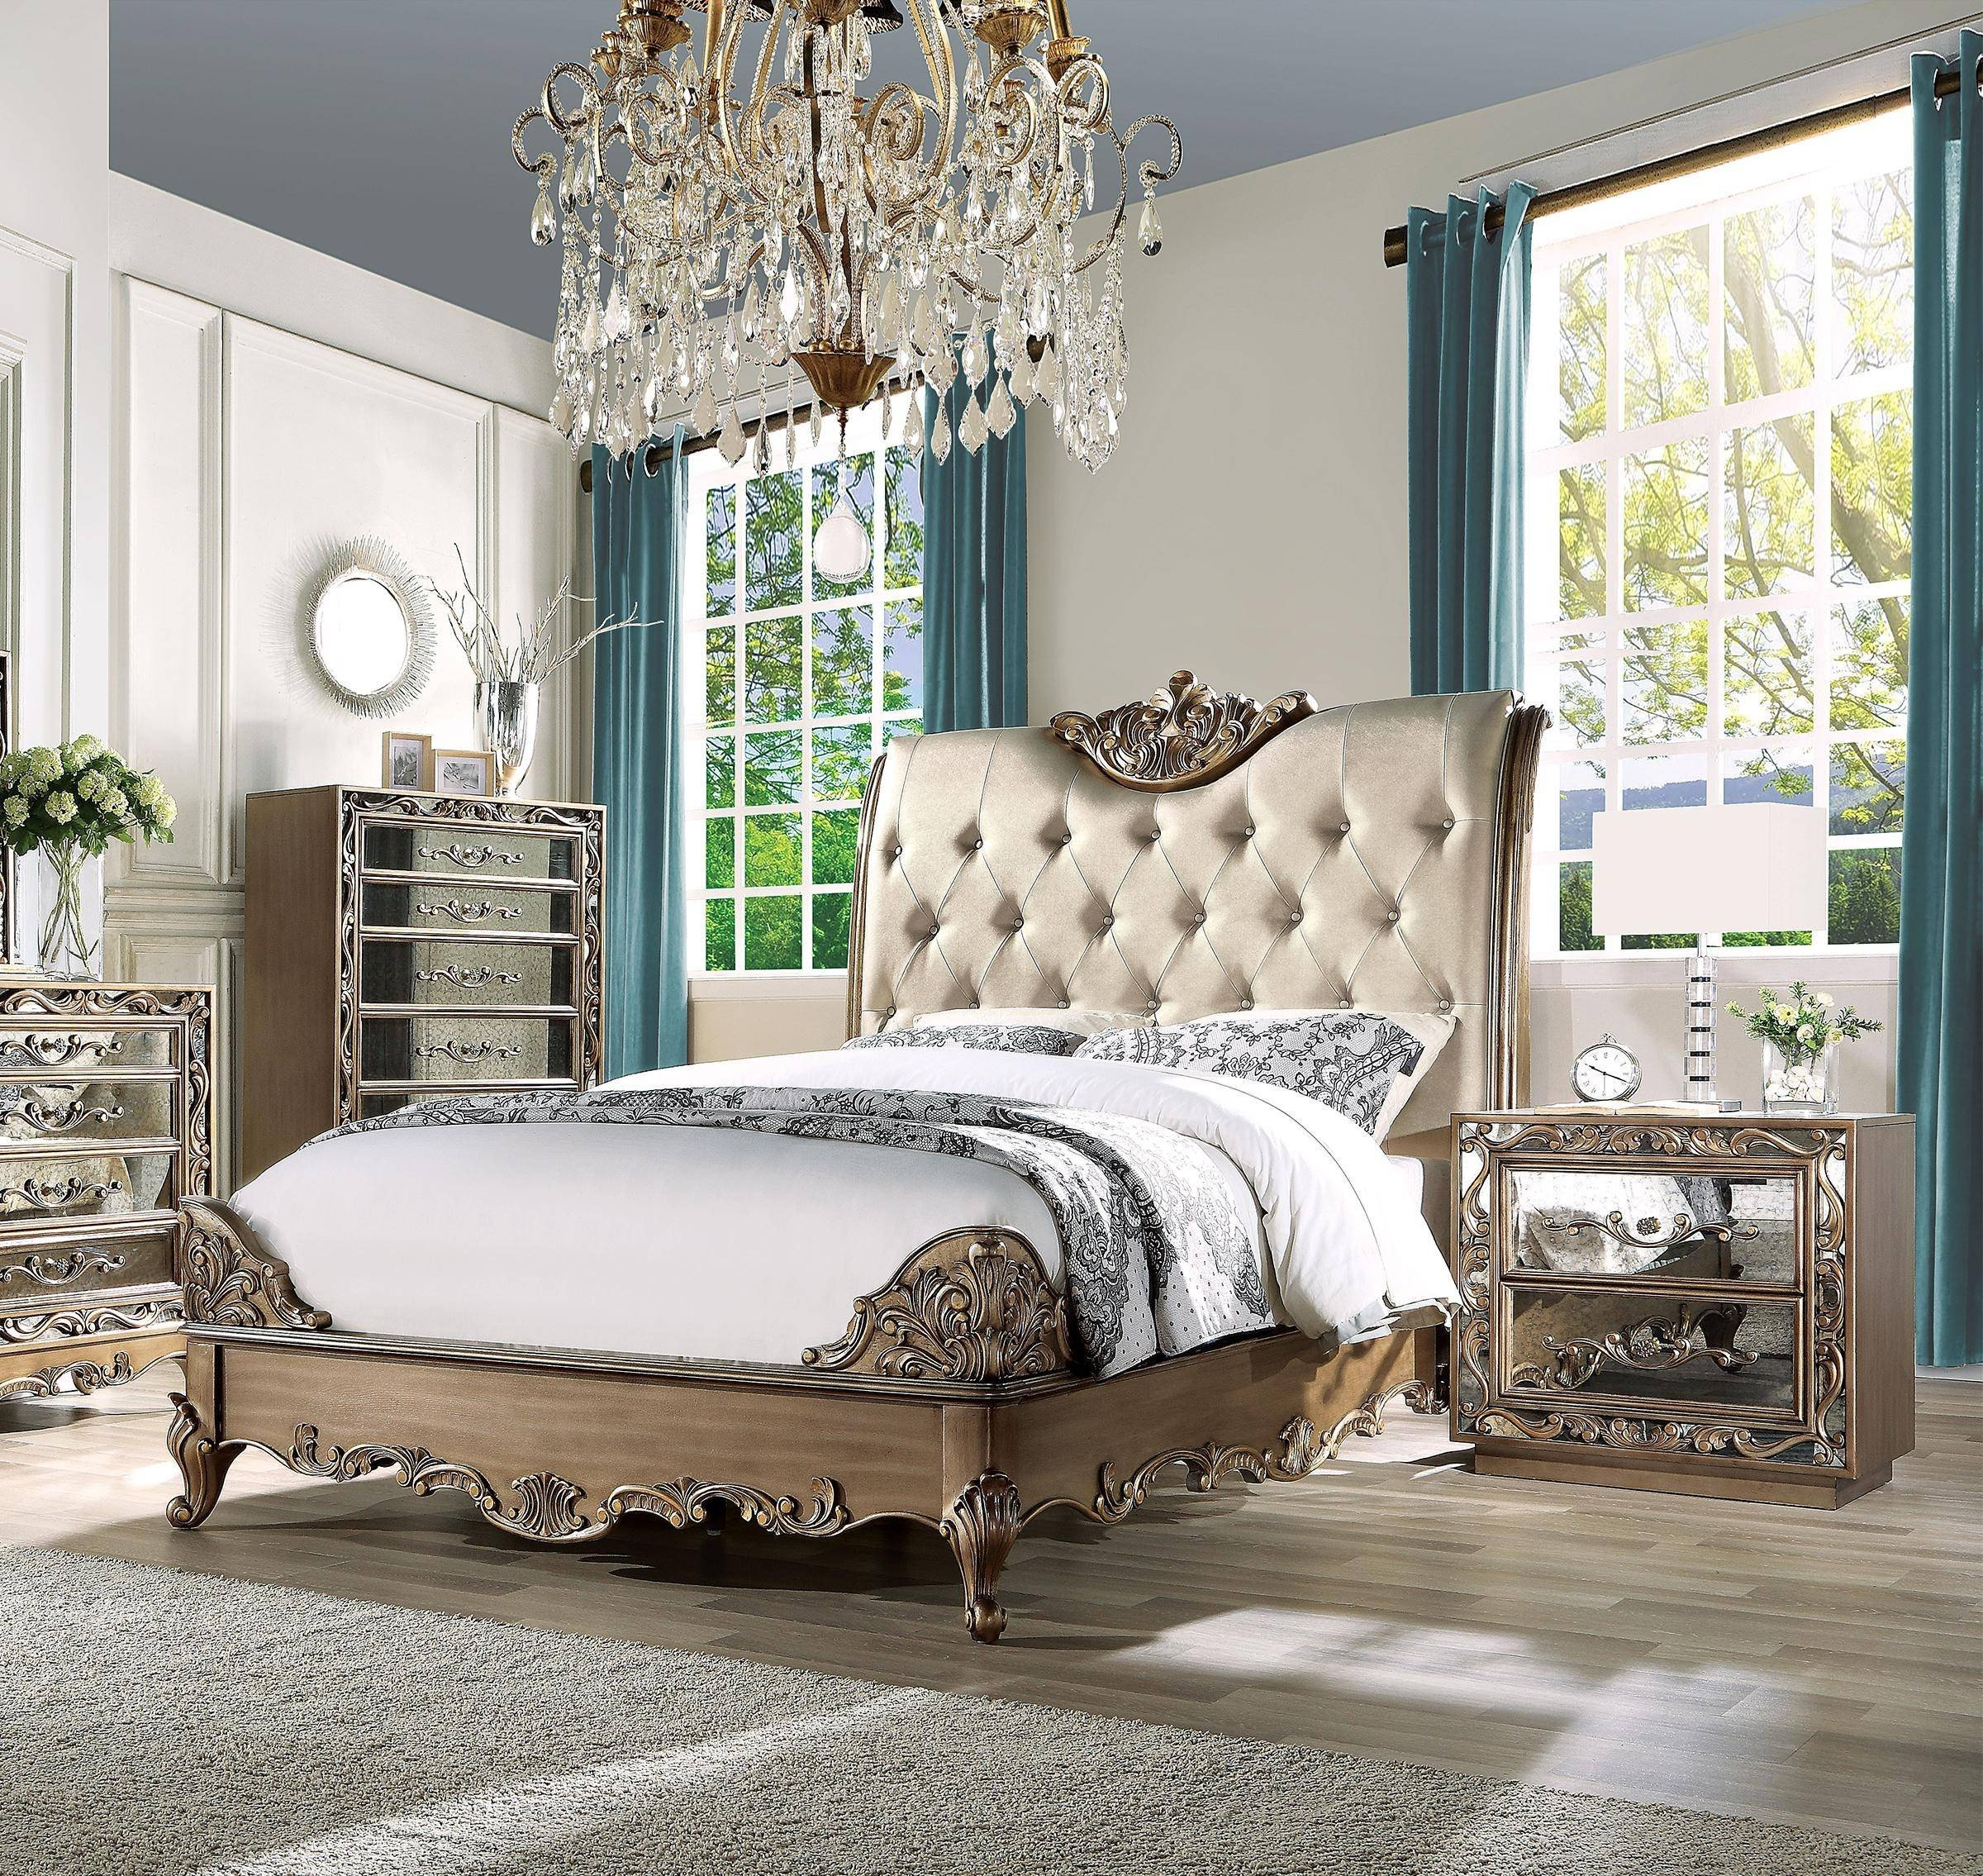 King Bedroom Furniture Set Unique Luxury King Bedroom Set 3 Antique Gold Champagne F Leather